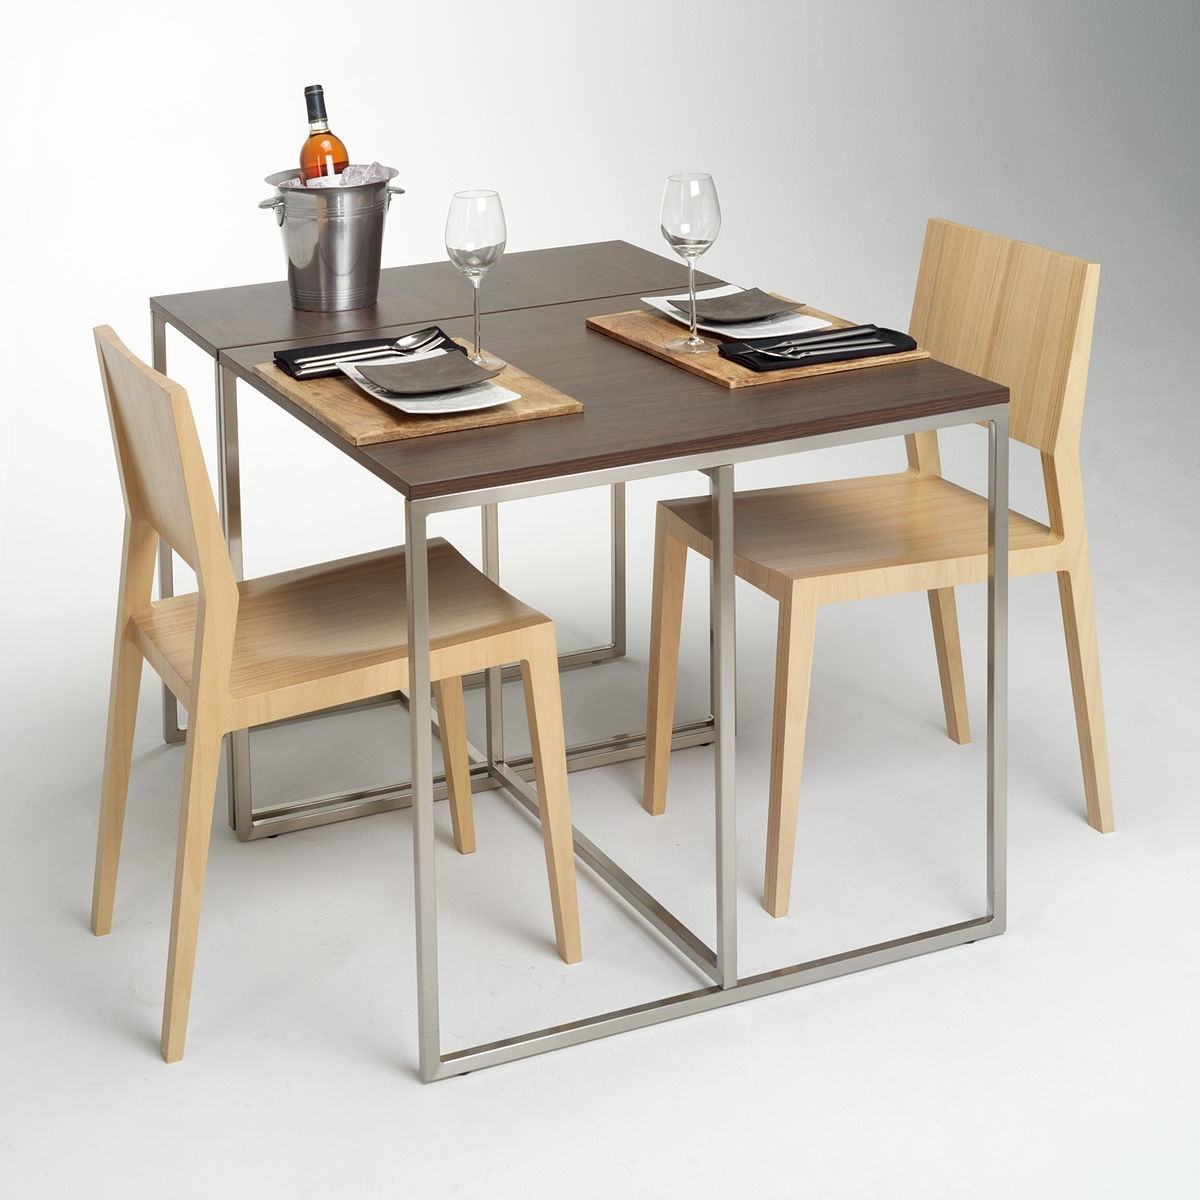 Furniture – Wikipedia For Trendy Dining Tables With 2 Seater (View 13 of 25)